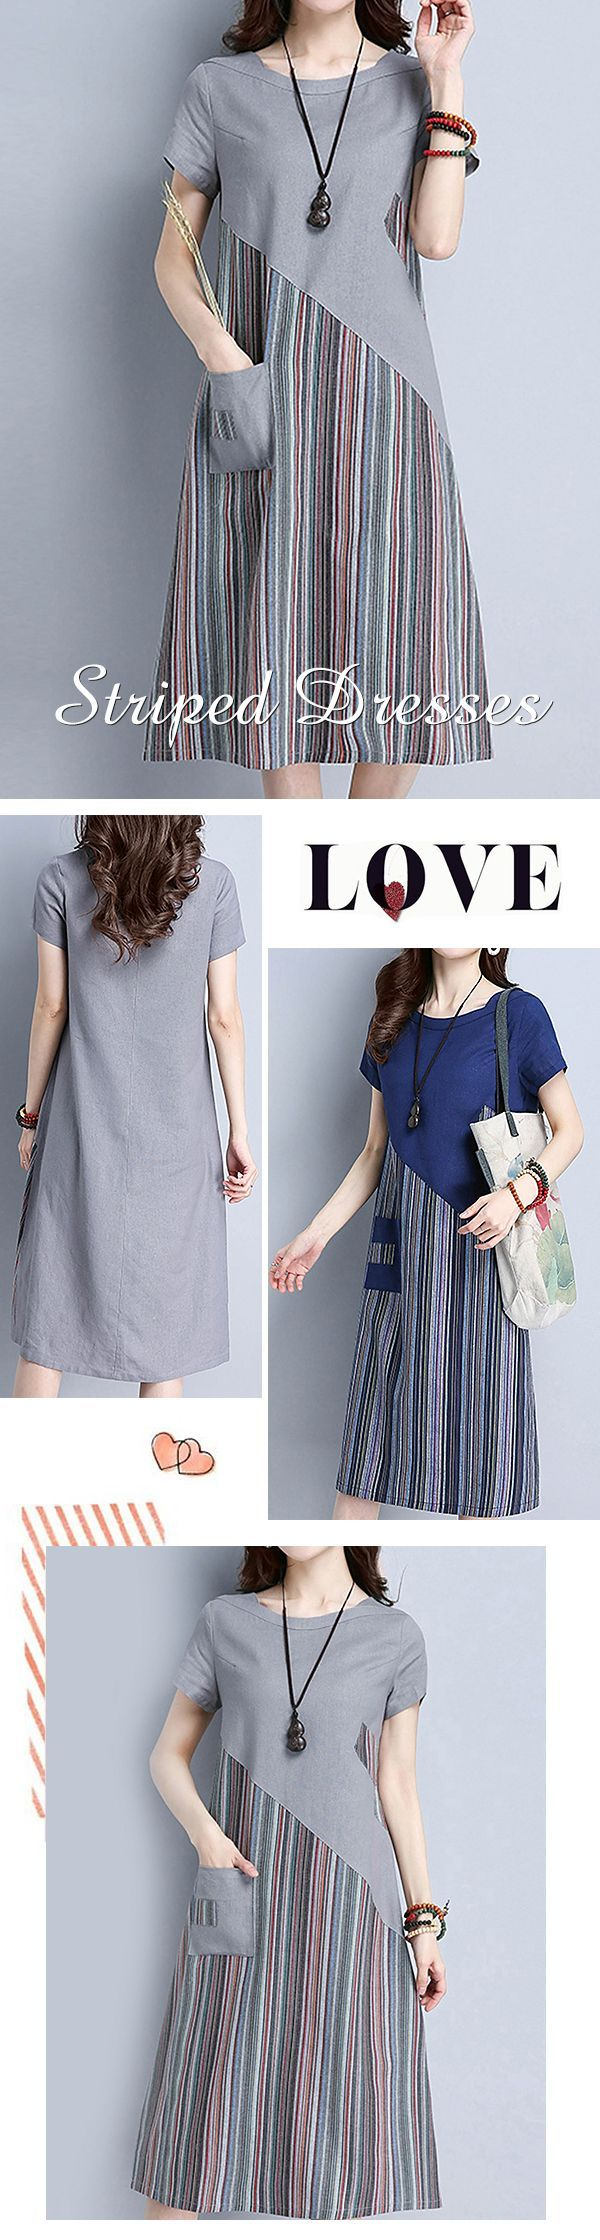 782 Best Rok Idees Images On Pinterest 50 Fashion Ideas Lgs Slim Fit Ladies Shirt Red Blue Short Sleeve Kombinasi Xxl Striped Patchwork O Neck Pocket Women Dresses